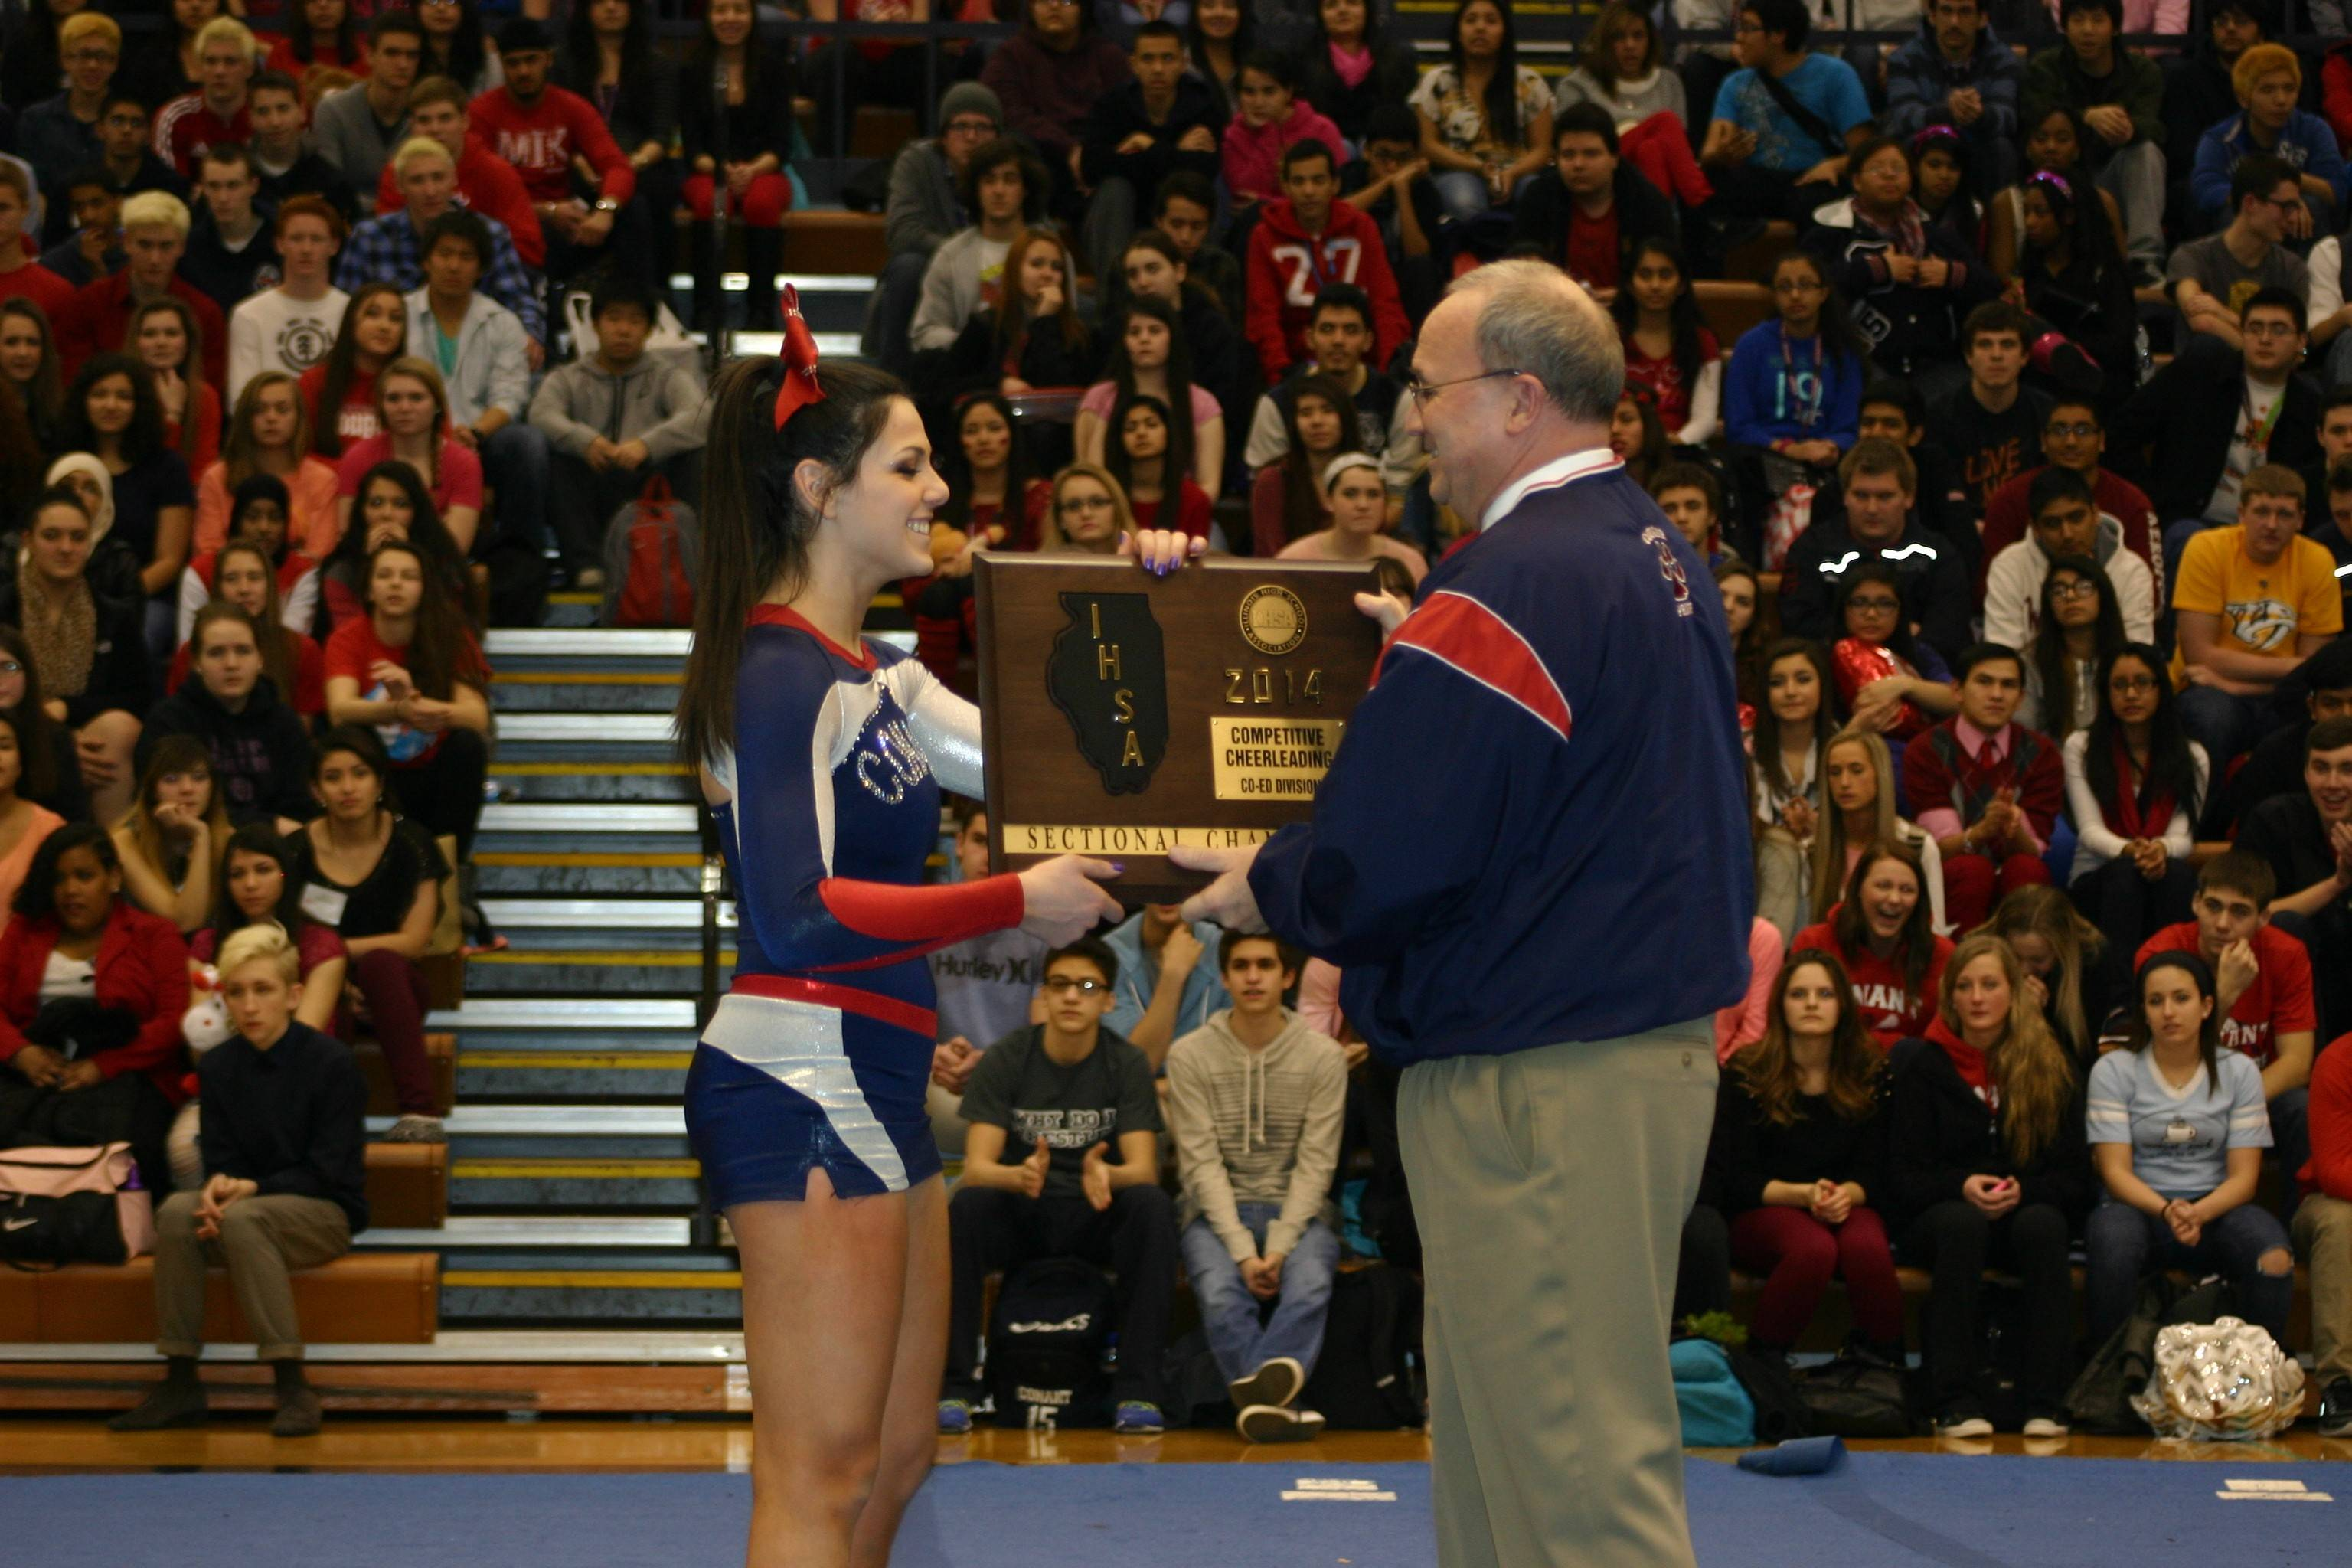 Senior cheerleader Hannah Shoro presents Conant Principal Tim Cannon with the sectional title plaque at a school pep rally Friday.